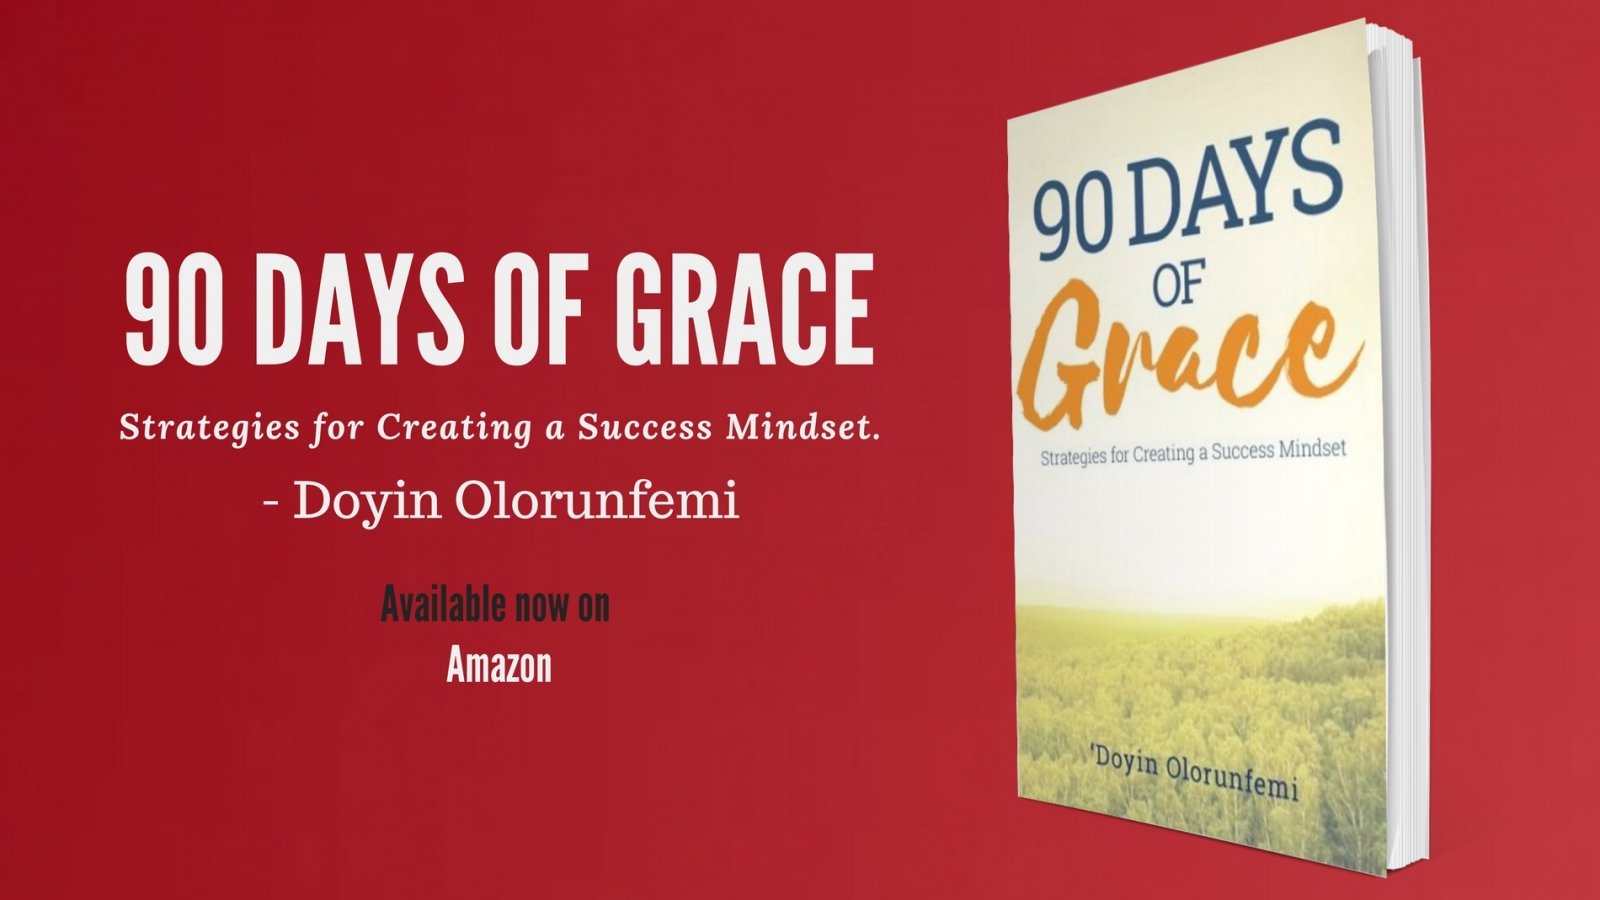 Doyin Olorunfemi author of 90 Days of Grace